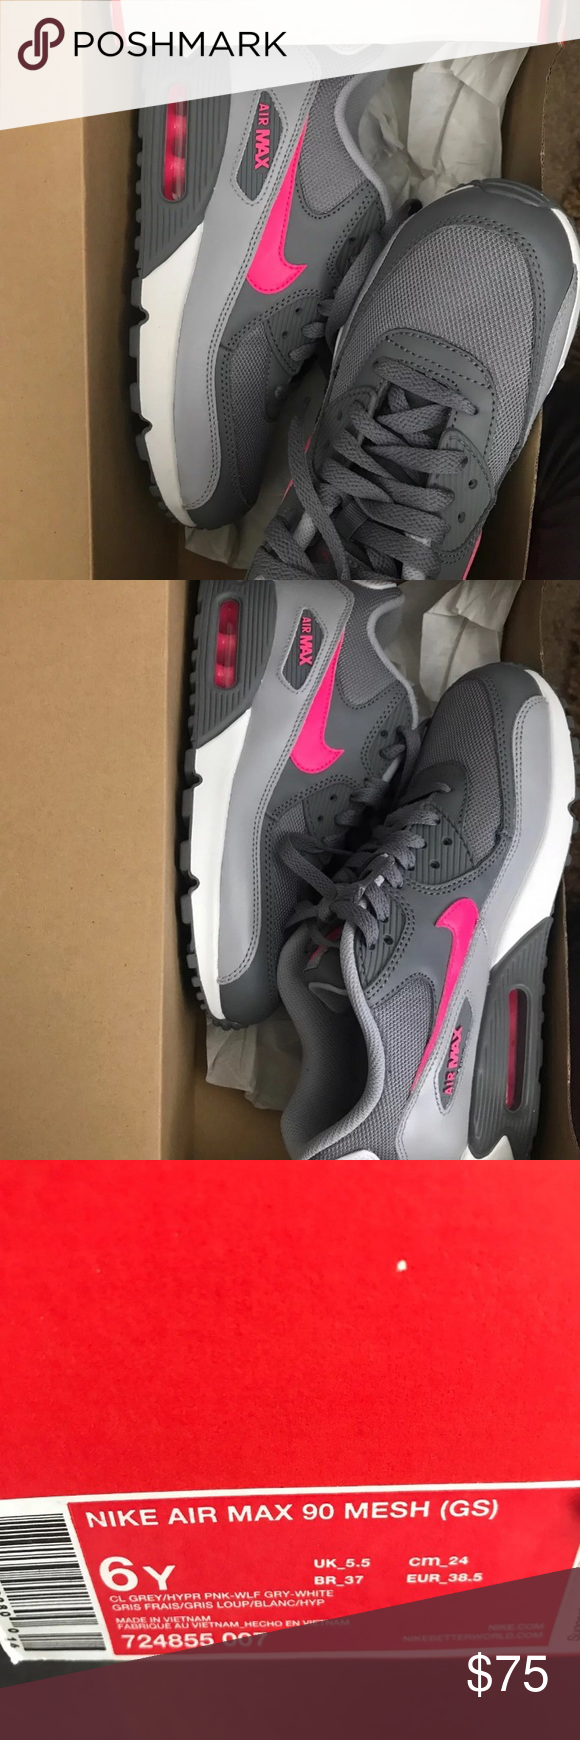 new products 2064a c9651 New Nike air max 90 Boys Gradeschool 6Y new grey hyper pink Nike Shoes  Sneakers